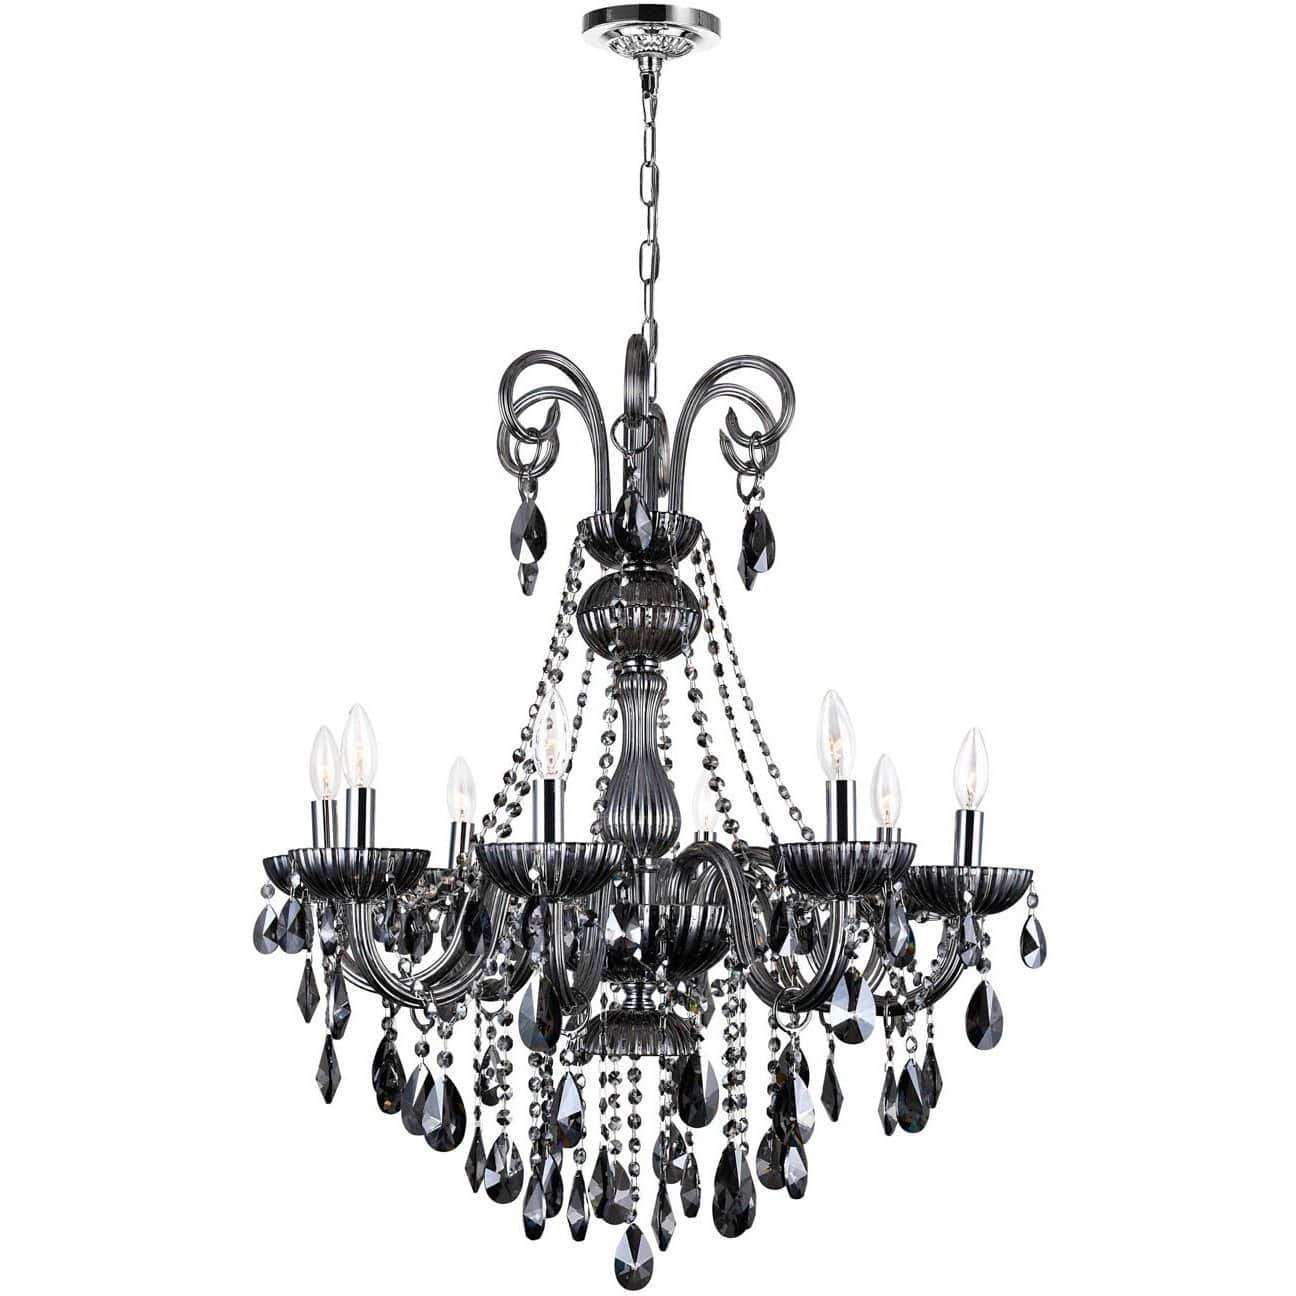 CWI Lighting Chandeliers Chrome / K9 Smoke Casper 8 Light Up Chandelier with Chrome finish by CWI Lighting 8393P28C-8 (Smoke)